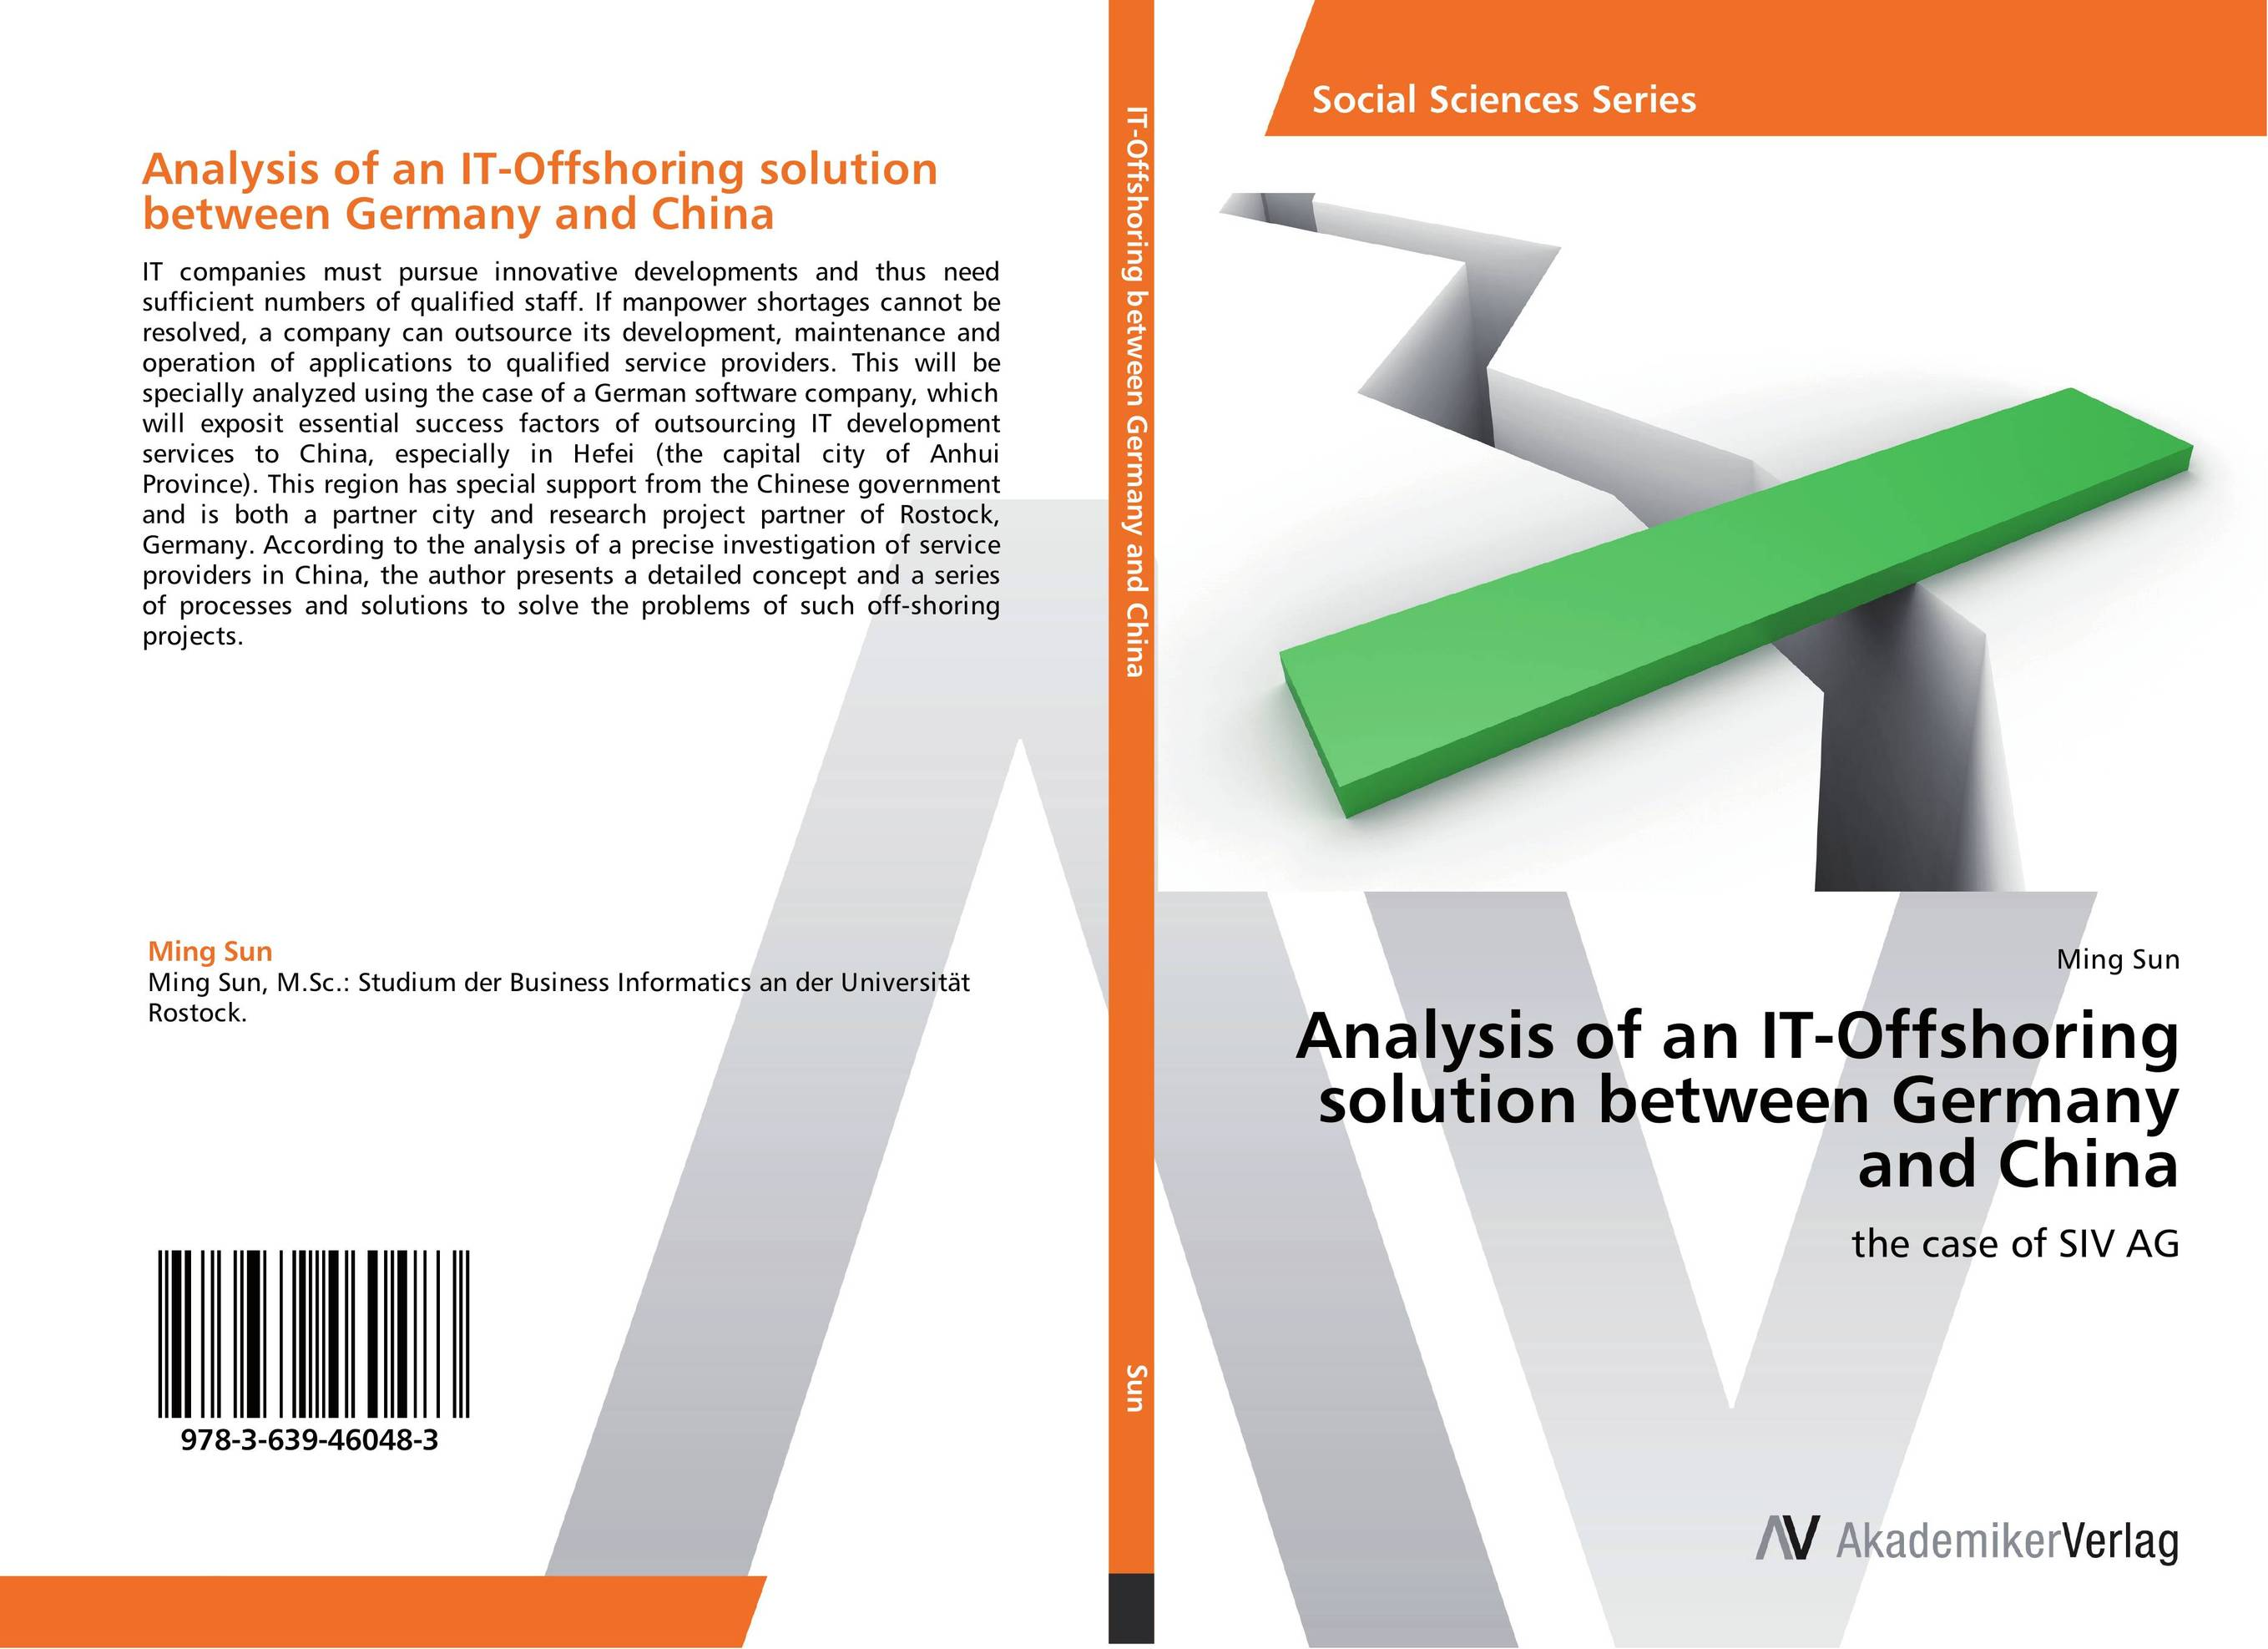 Analysis of an IT-Offshoring solution between Germany and China